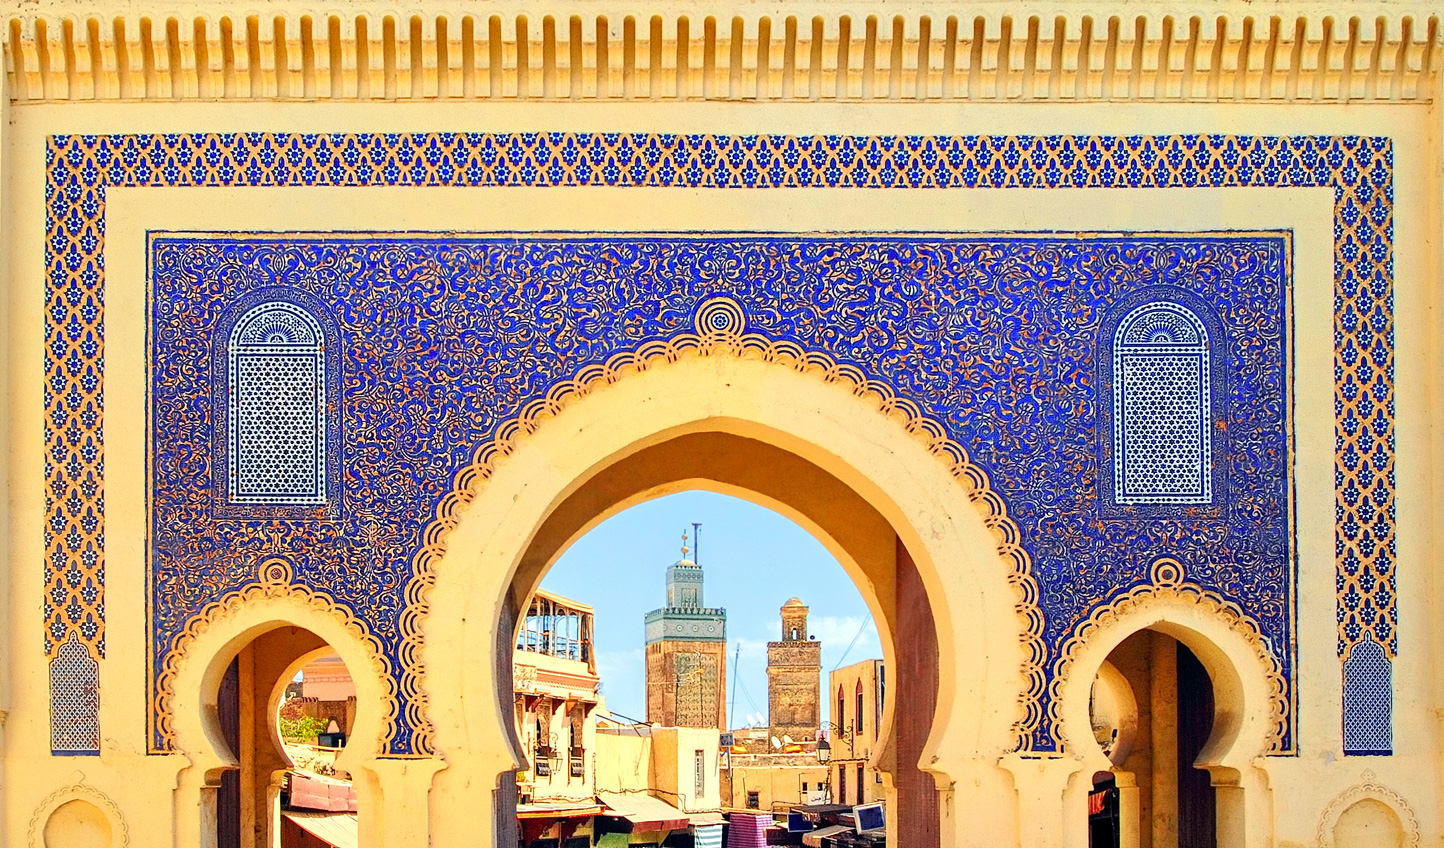 Explore the best of Morocco with its winding medinas, fragrant souks and mesmerising landscapes